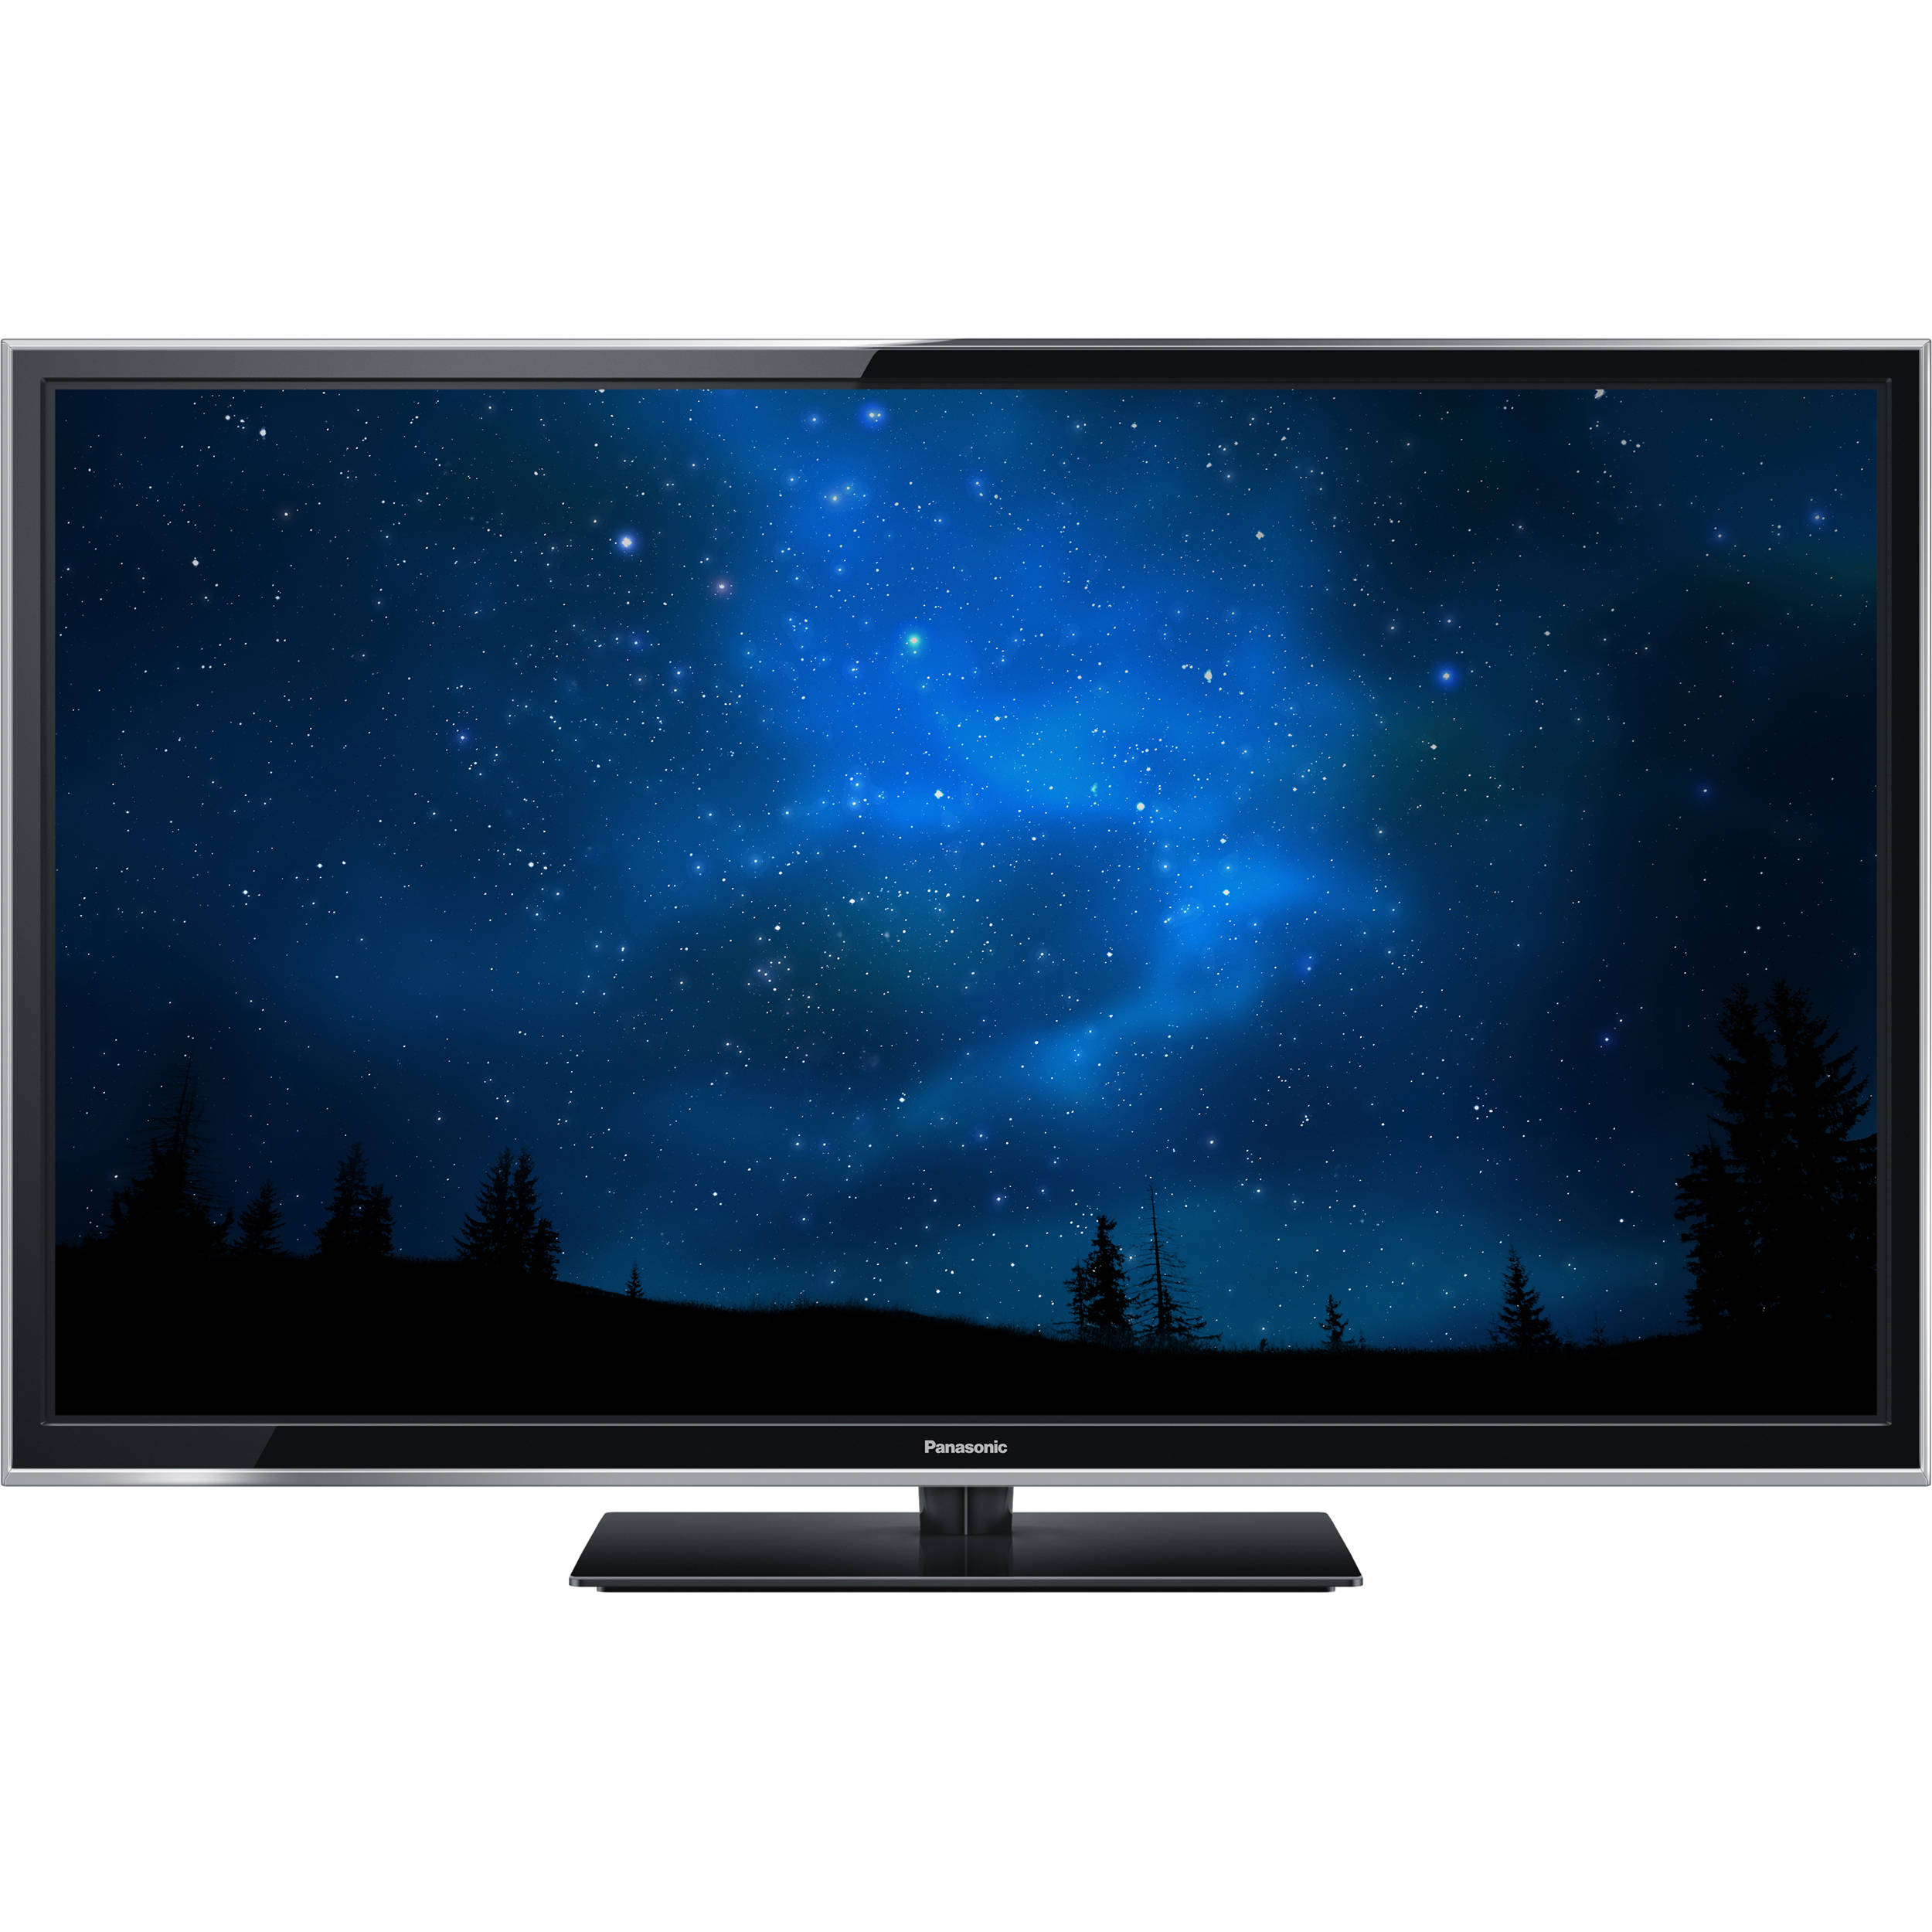 panasonic 50 viera st60 series full hd plasma tv. Black Bedroom Furniture Sets. Home Design Ideas